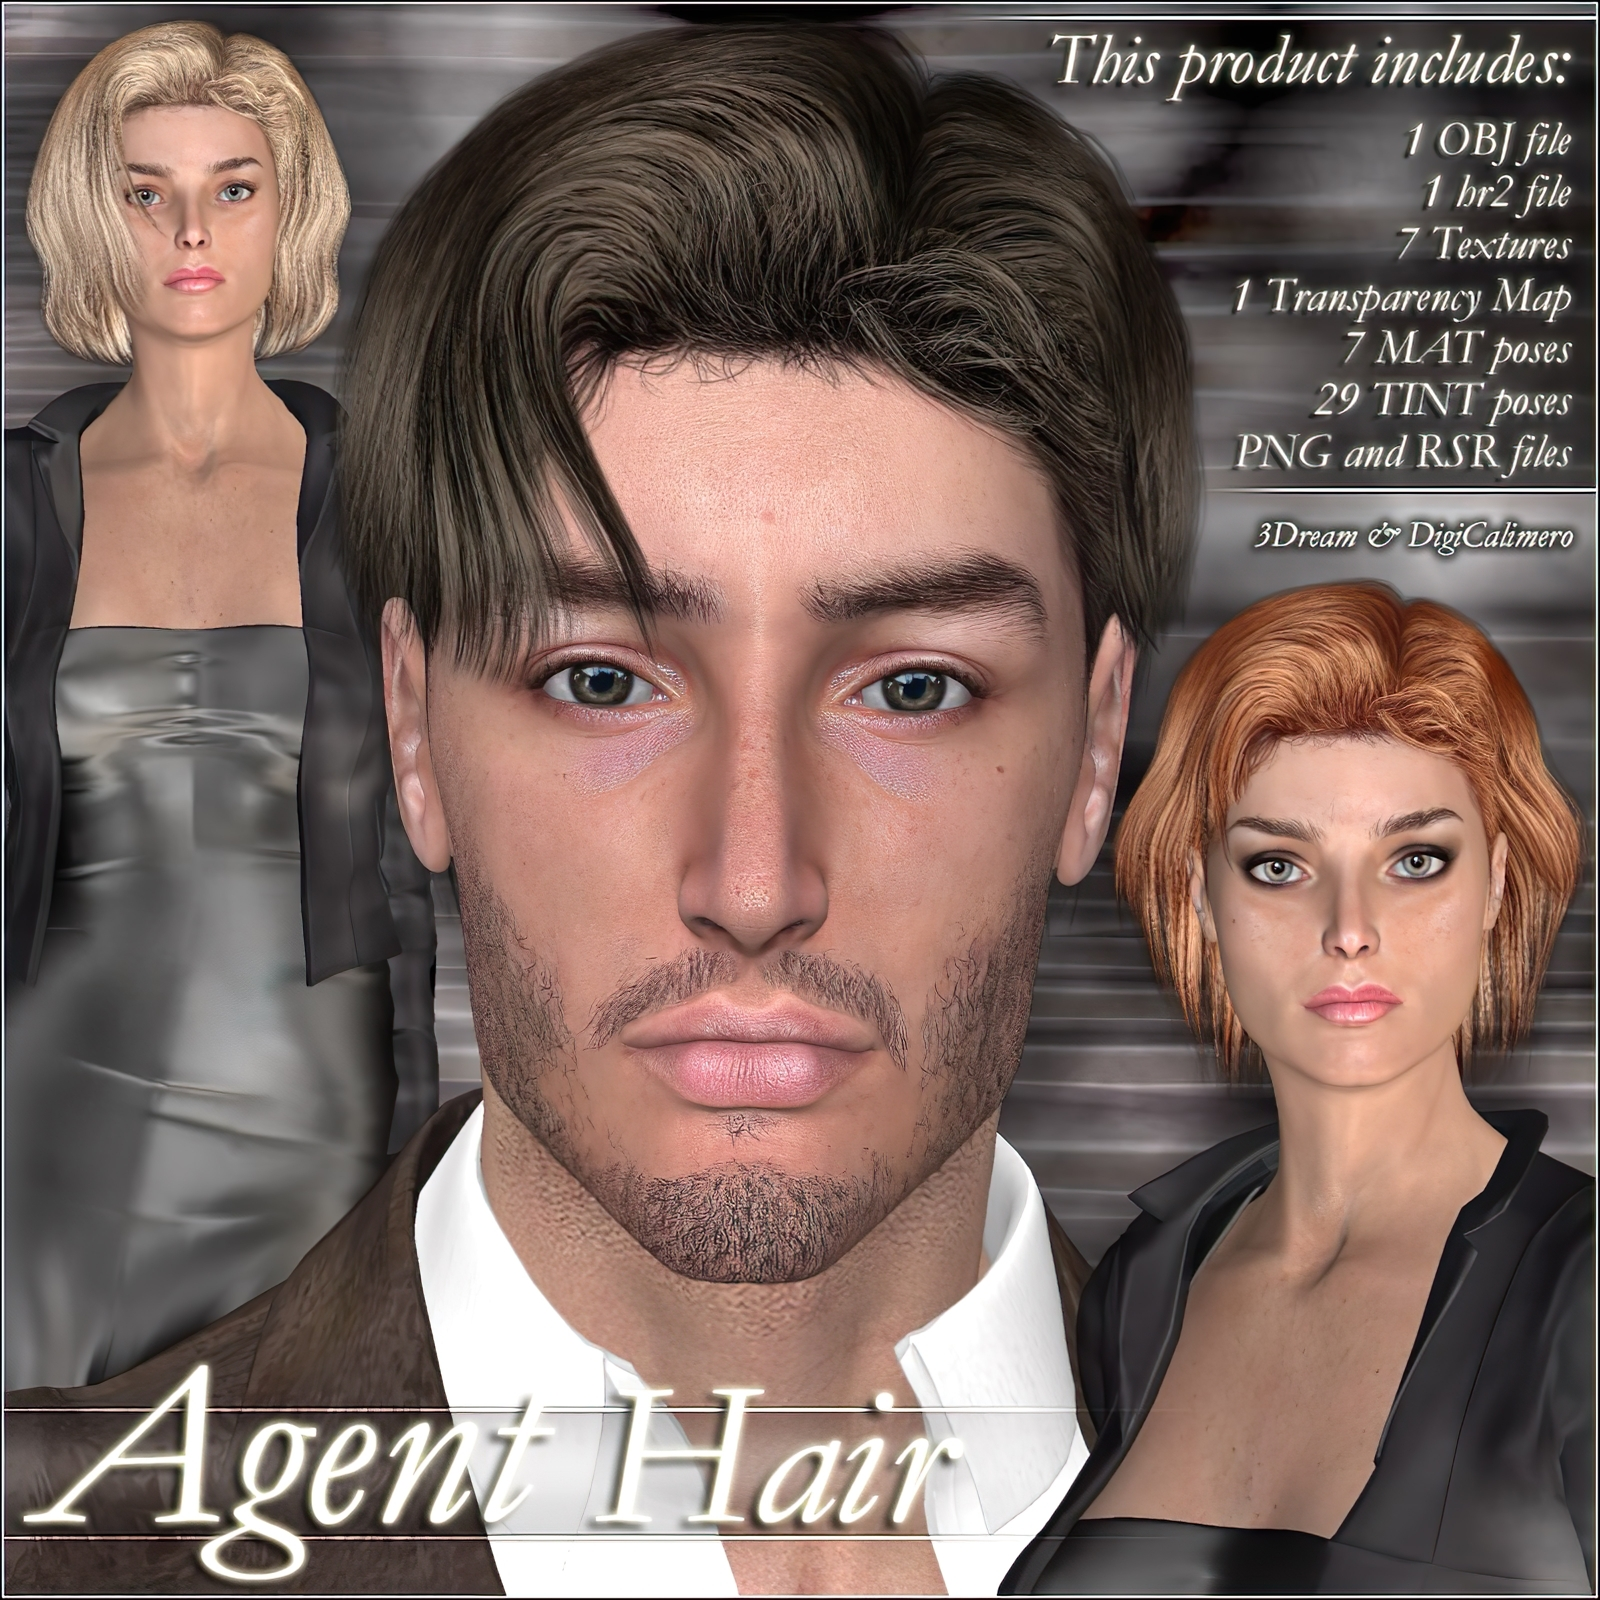 Agent Hair by 3Dream